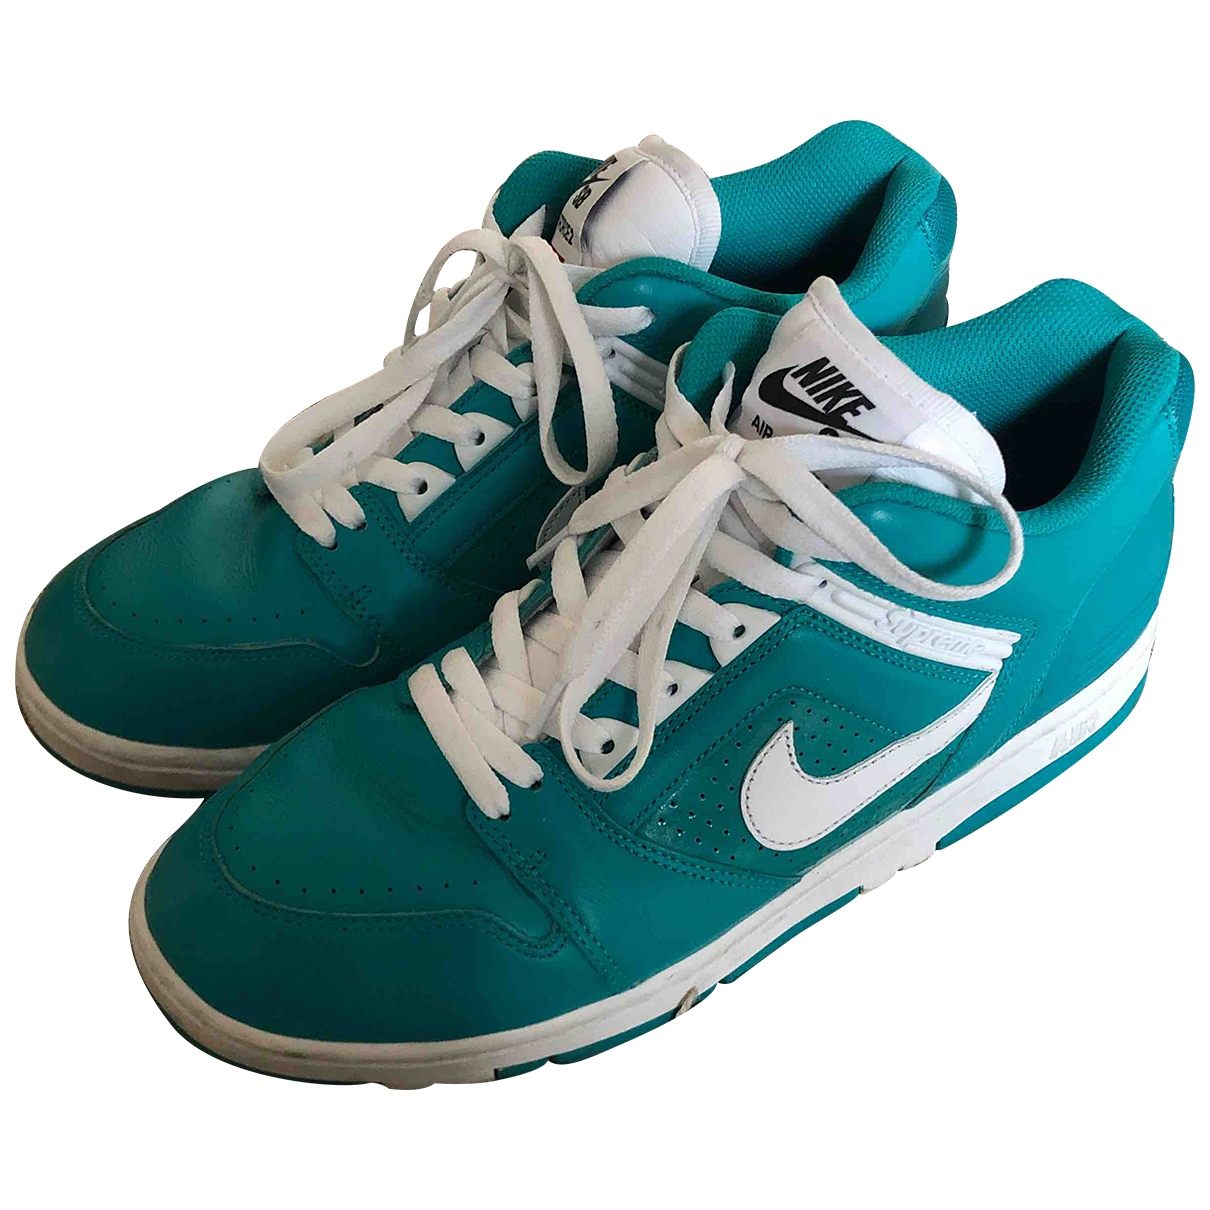 Nike X Supreme SB Air Force 2 Low Turquoise Leather Trainers for Men 10.5 US